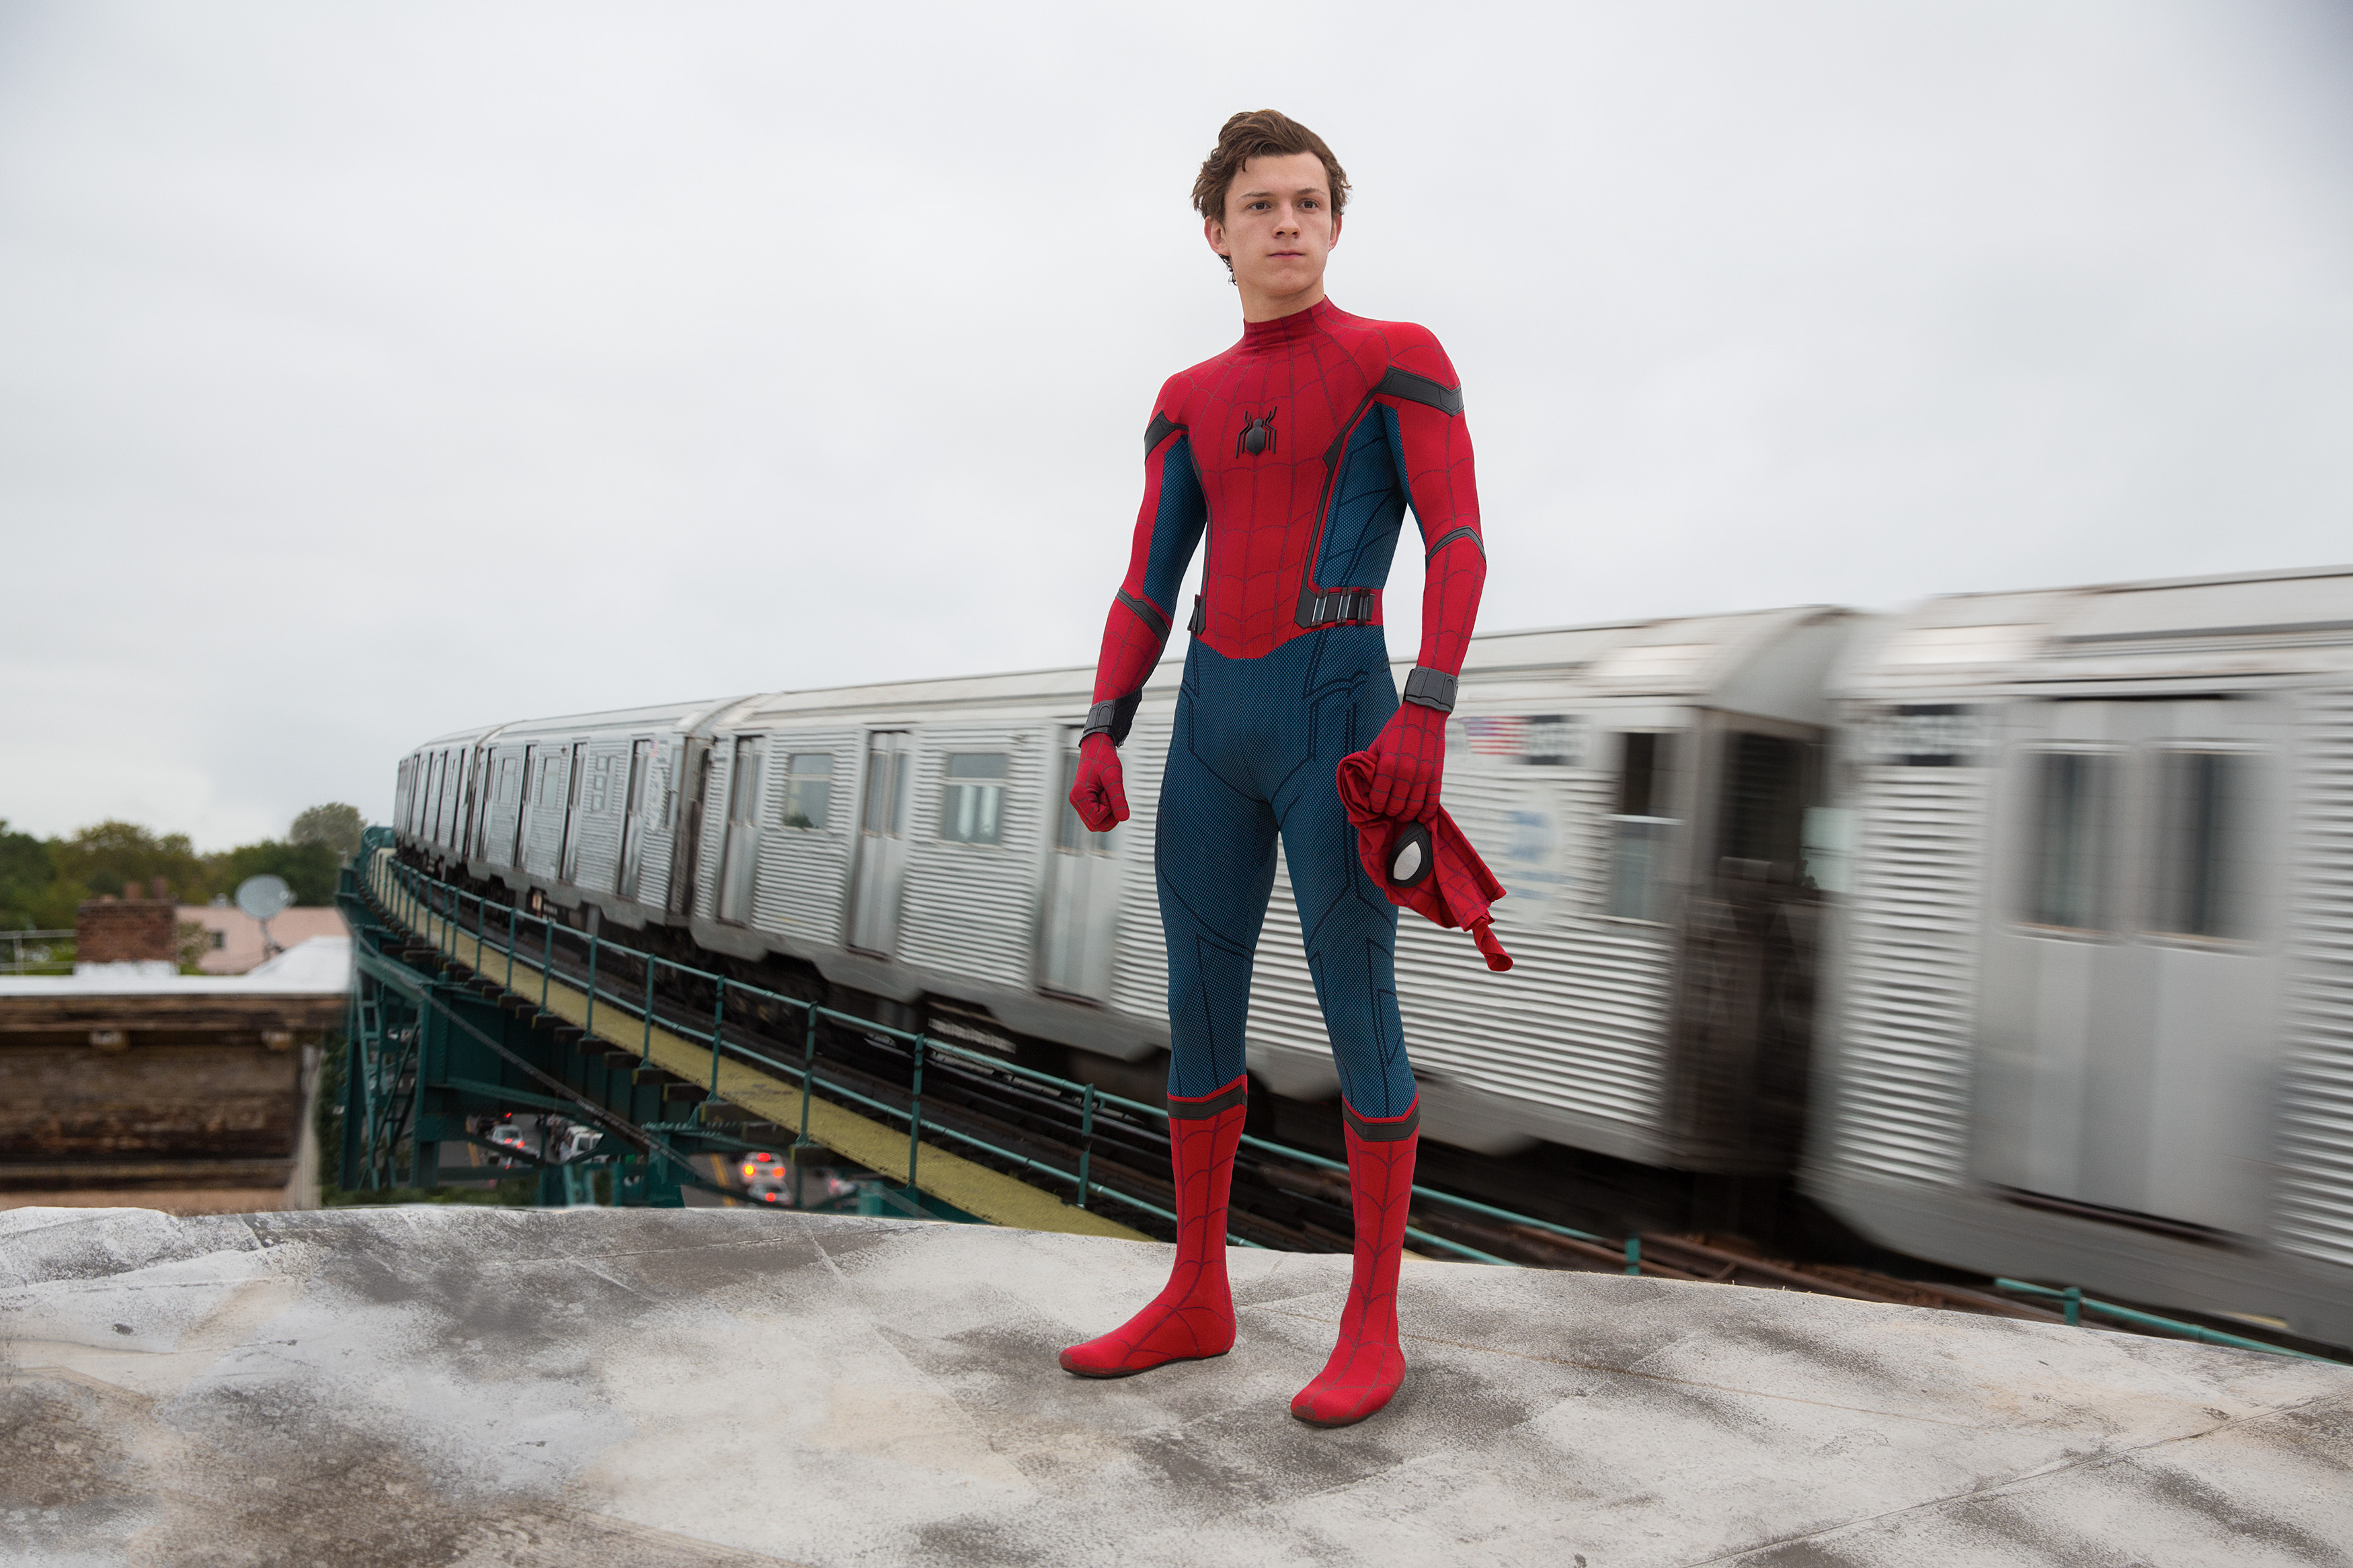 Set Photos from Spider-Man: Far from Home Feature Tom Holland as Peter Parker